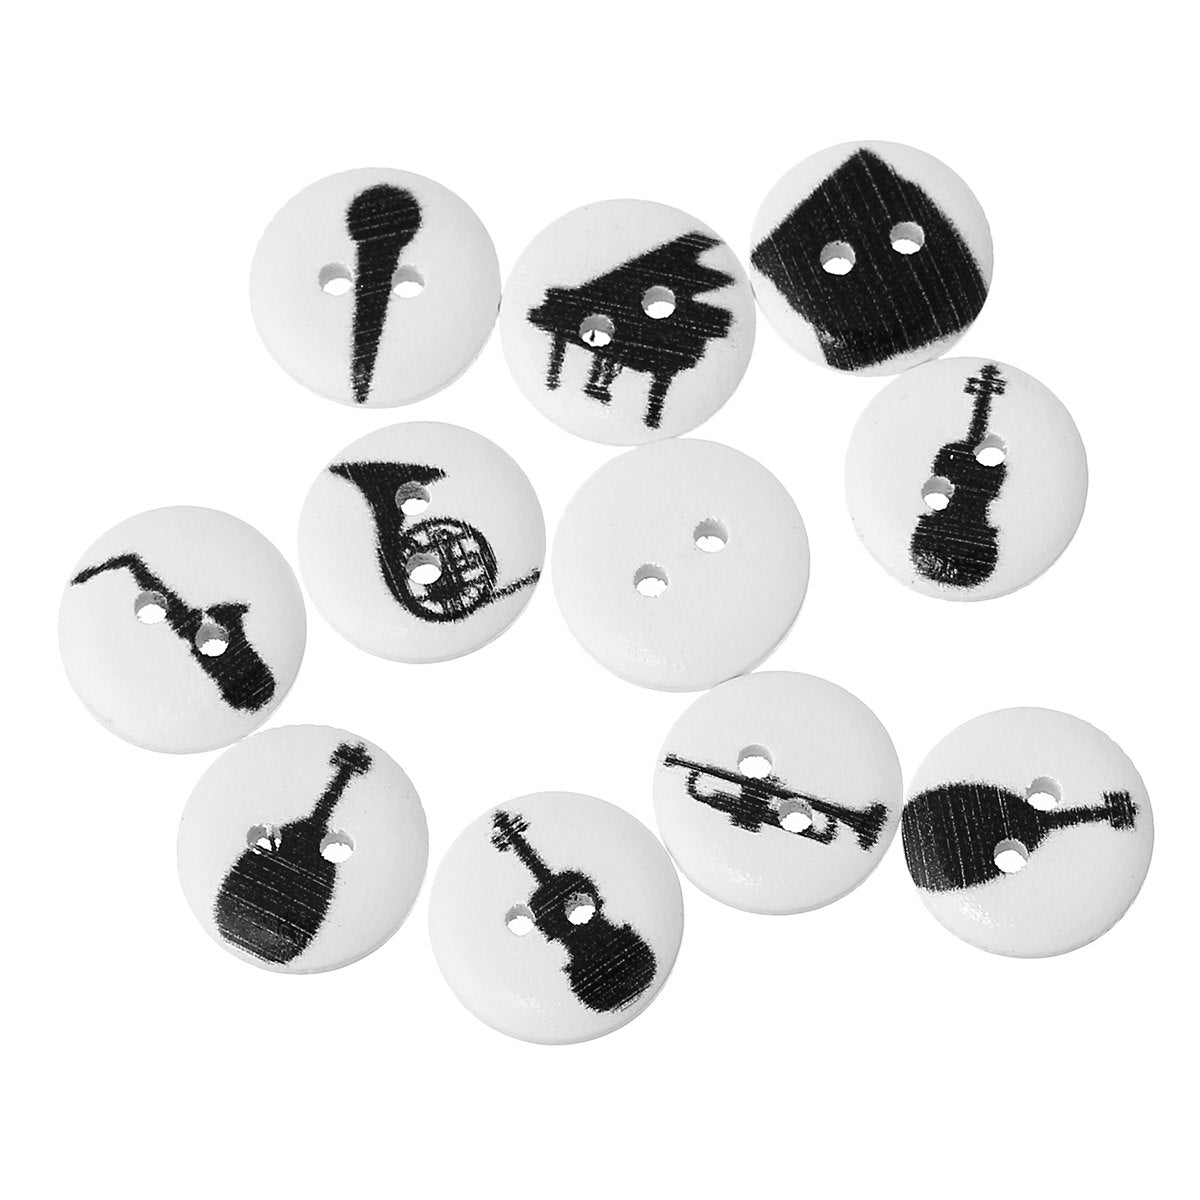 10 Musical Instruments Buttons Black - White Wooden Button - 15mm -  2 hole